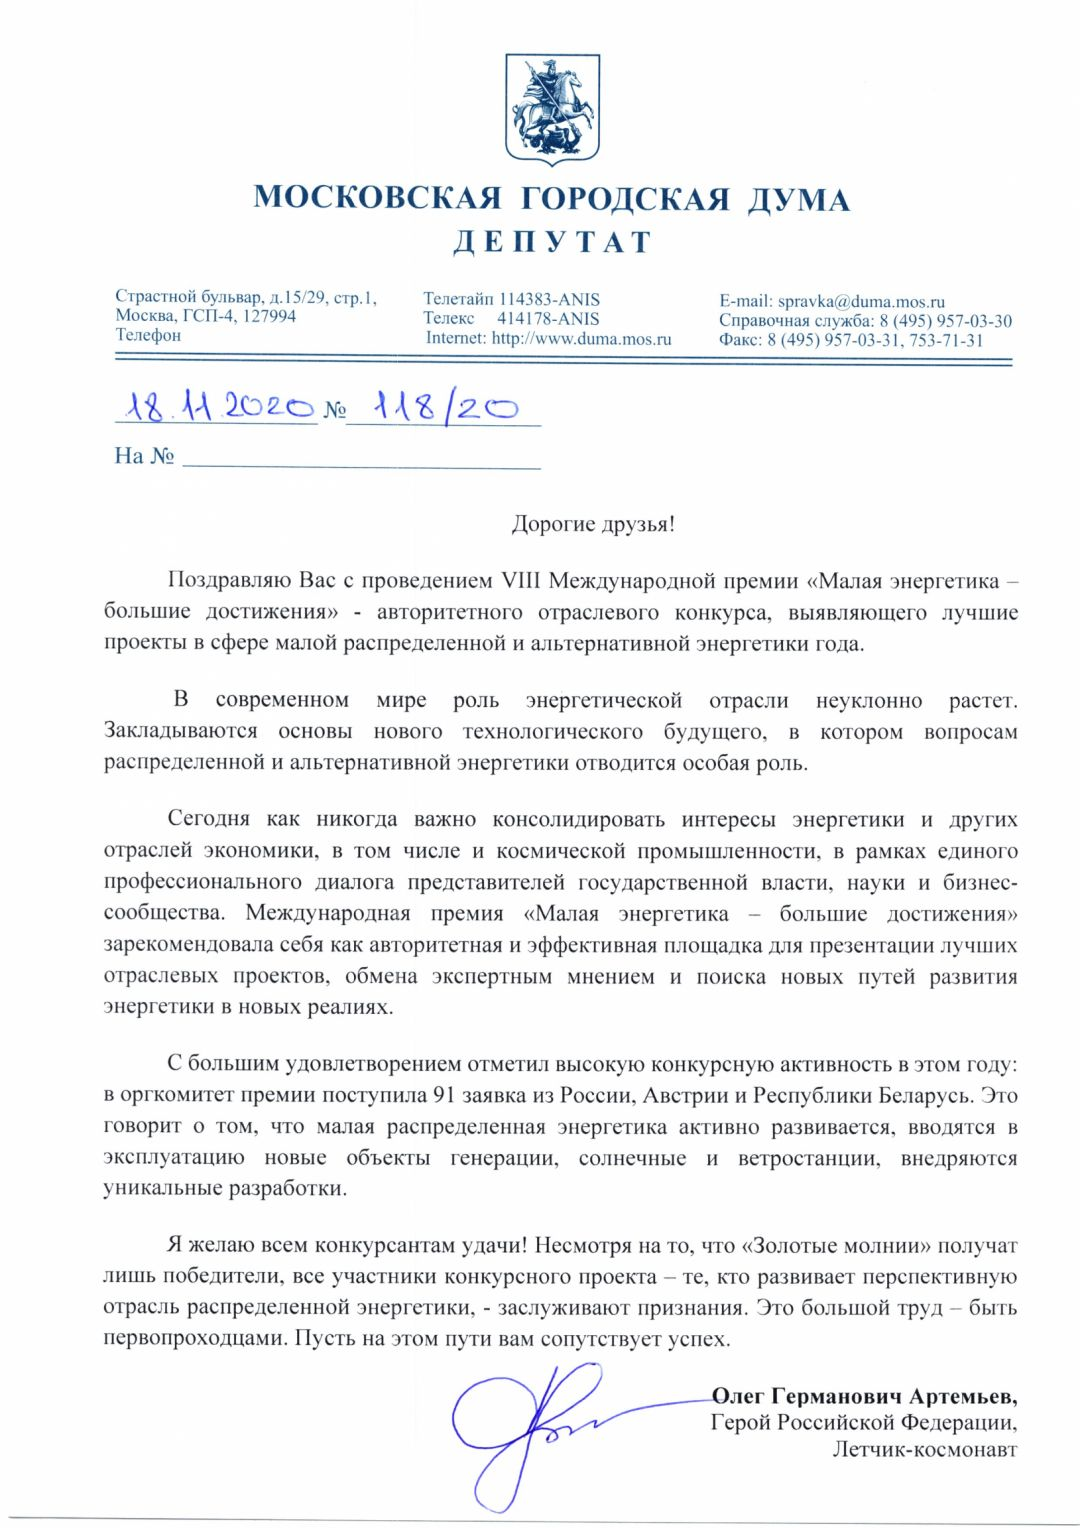 Greeting appeal from the Hero of the Russian Federation, pilot-cosmonaut Oleg Artemiyev